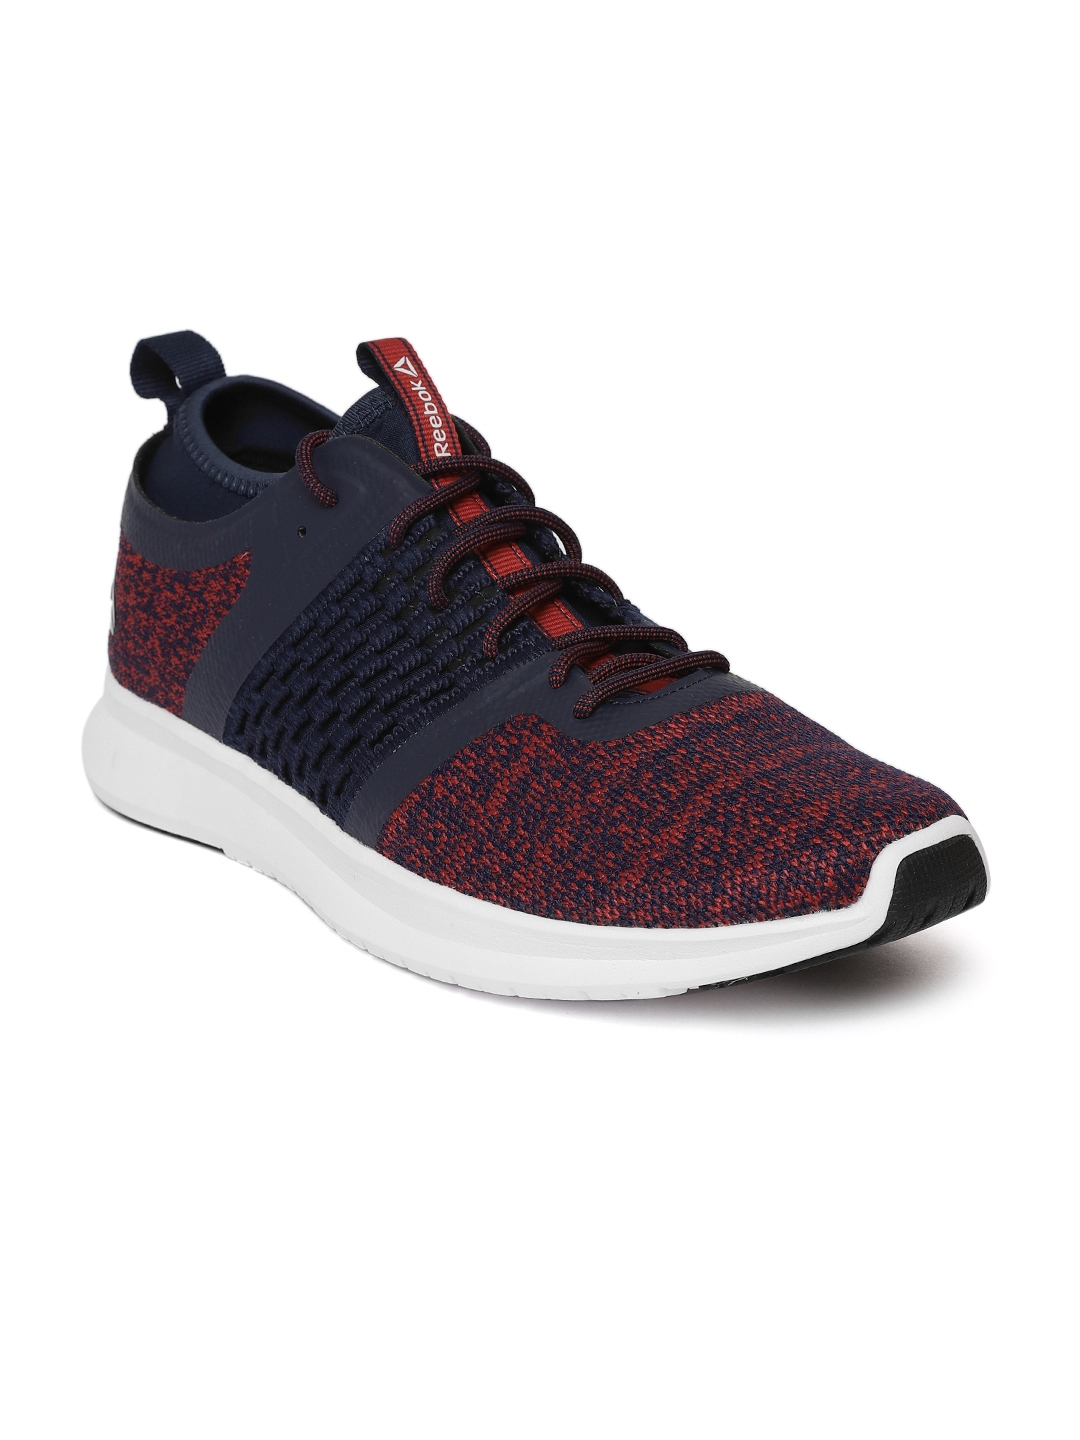 956963eee9c52d Buy Reebok Men Red   Navy Blue Zeal O Ride Patterned Running Shoes ...